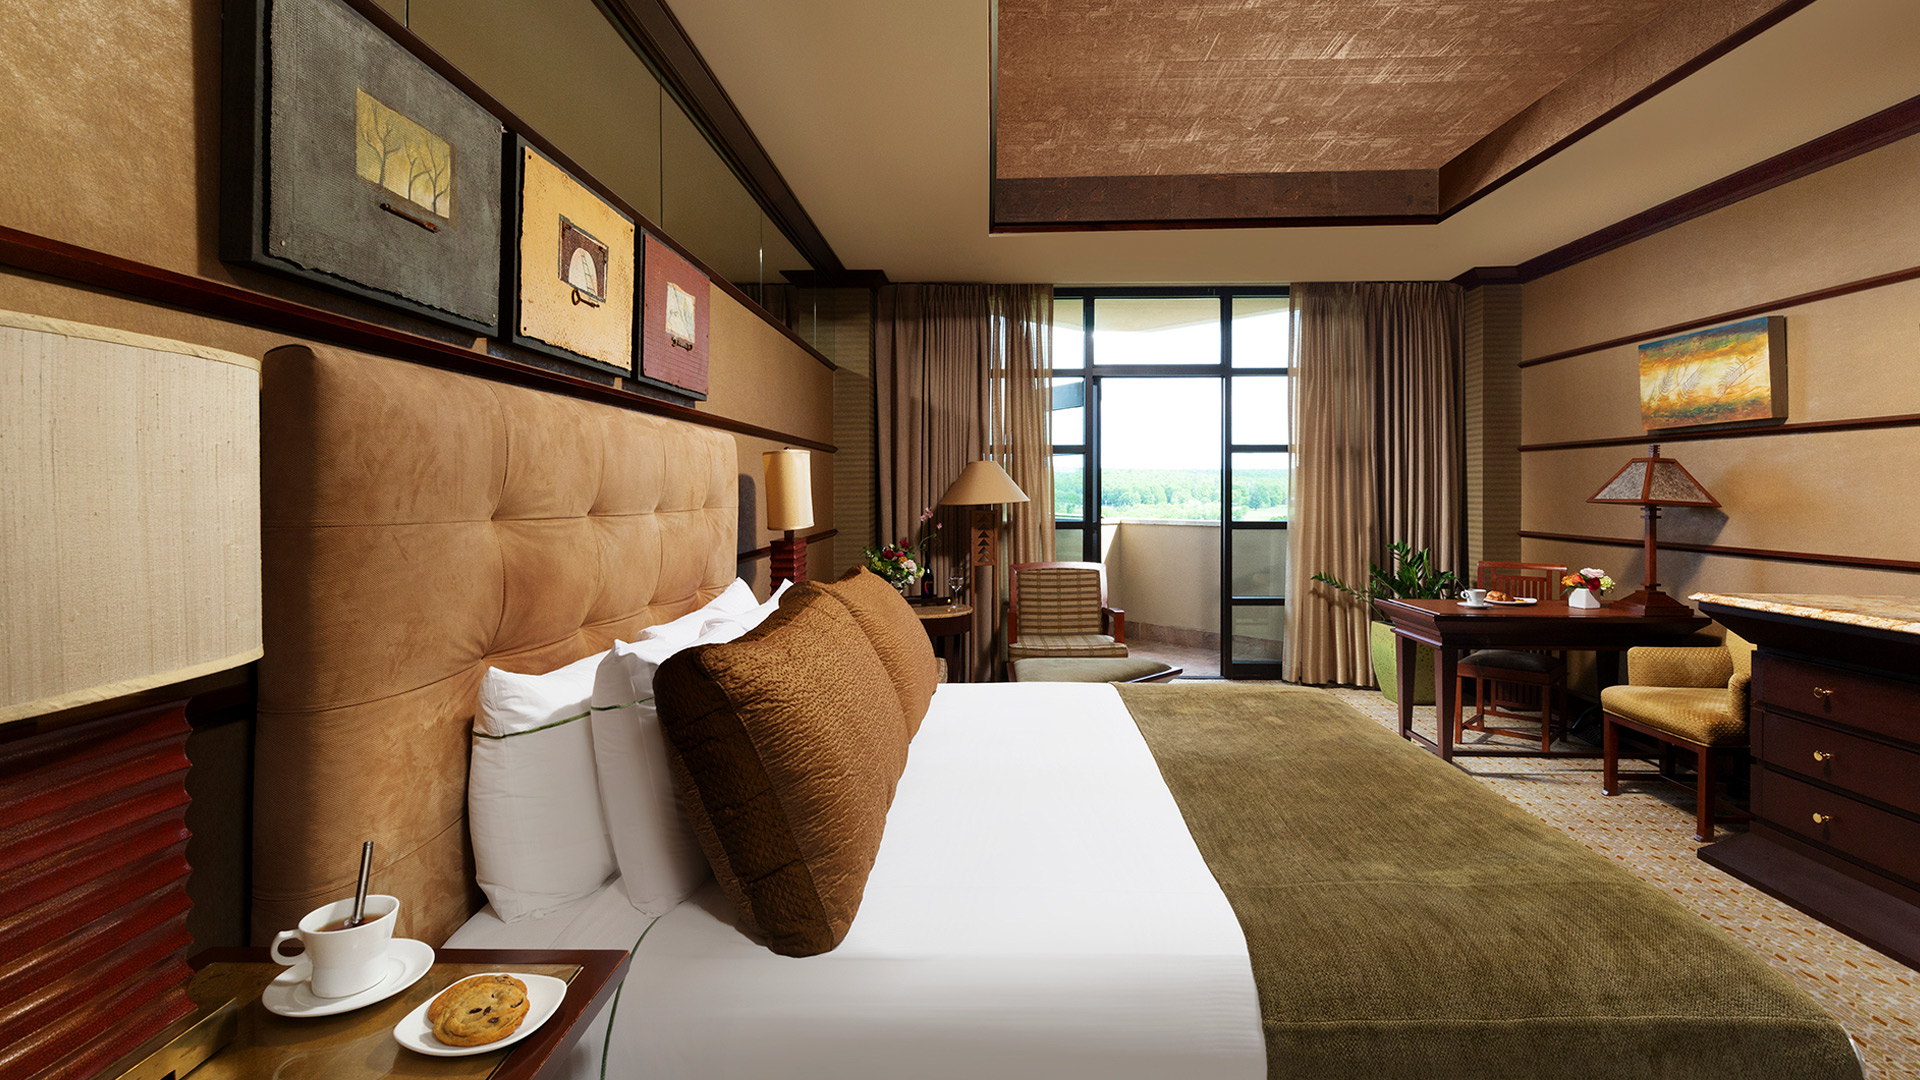 an interior shot of Falling Rock's balcony king room. There is a bed with a plush headboard and white, green and brown bedding. There is a sitting area with a table and dresser across from the bed. There is a door that leads to a balcony overlooking the resort grounds.